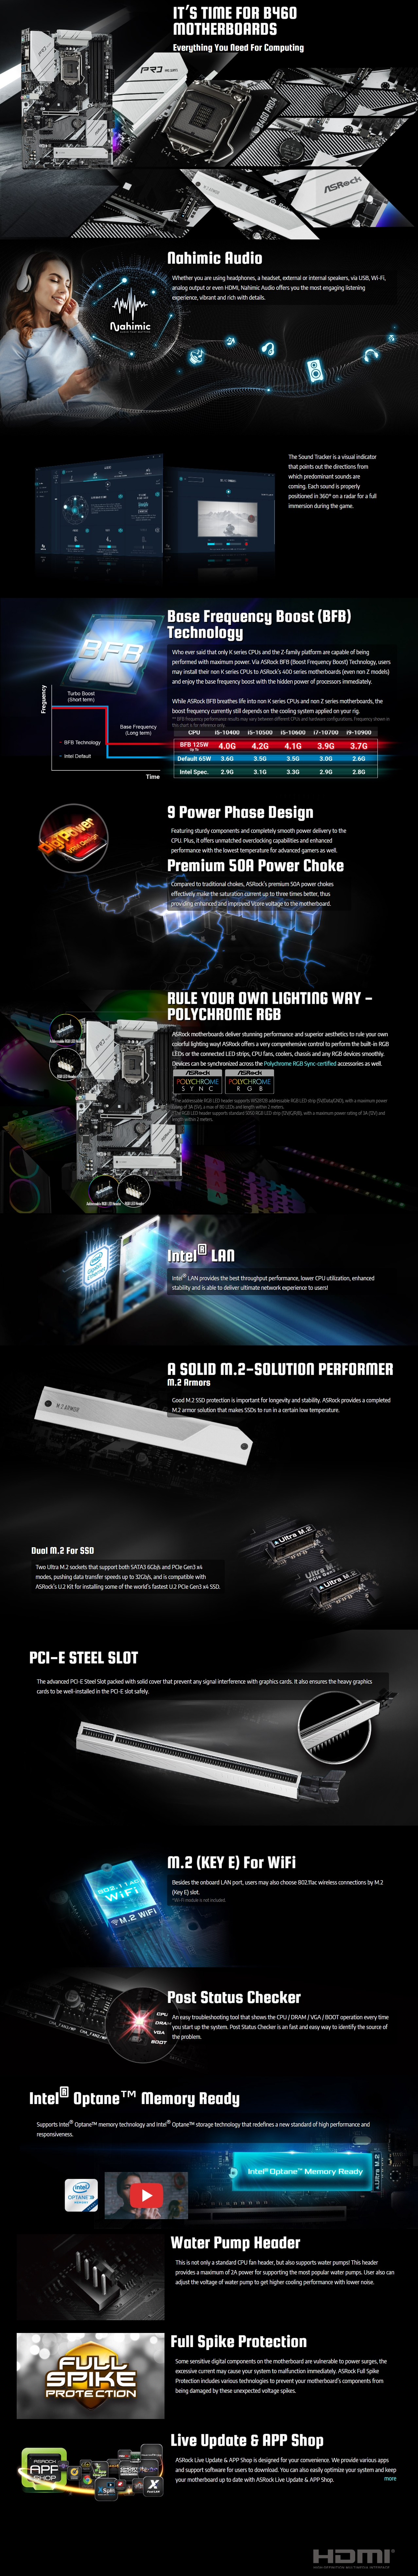 A large marketing image providing additional information about the product ASRock B460 Pro4 LGA1200 ATX Desktop Motherboard - Additional alt info not provided